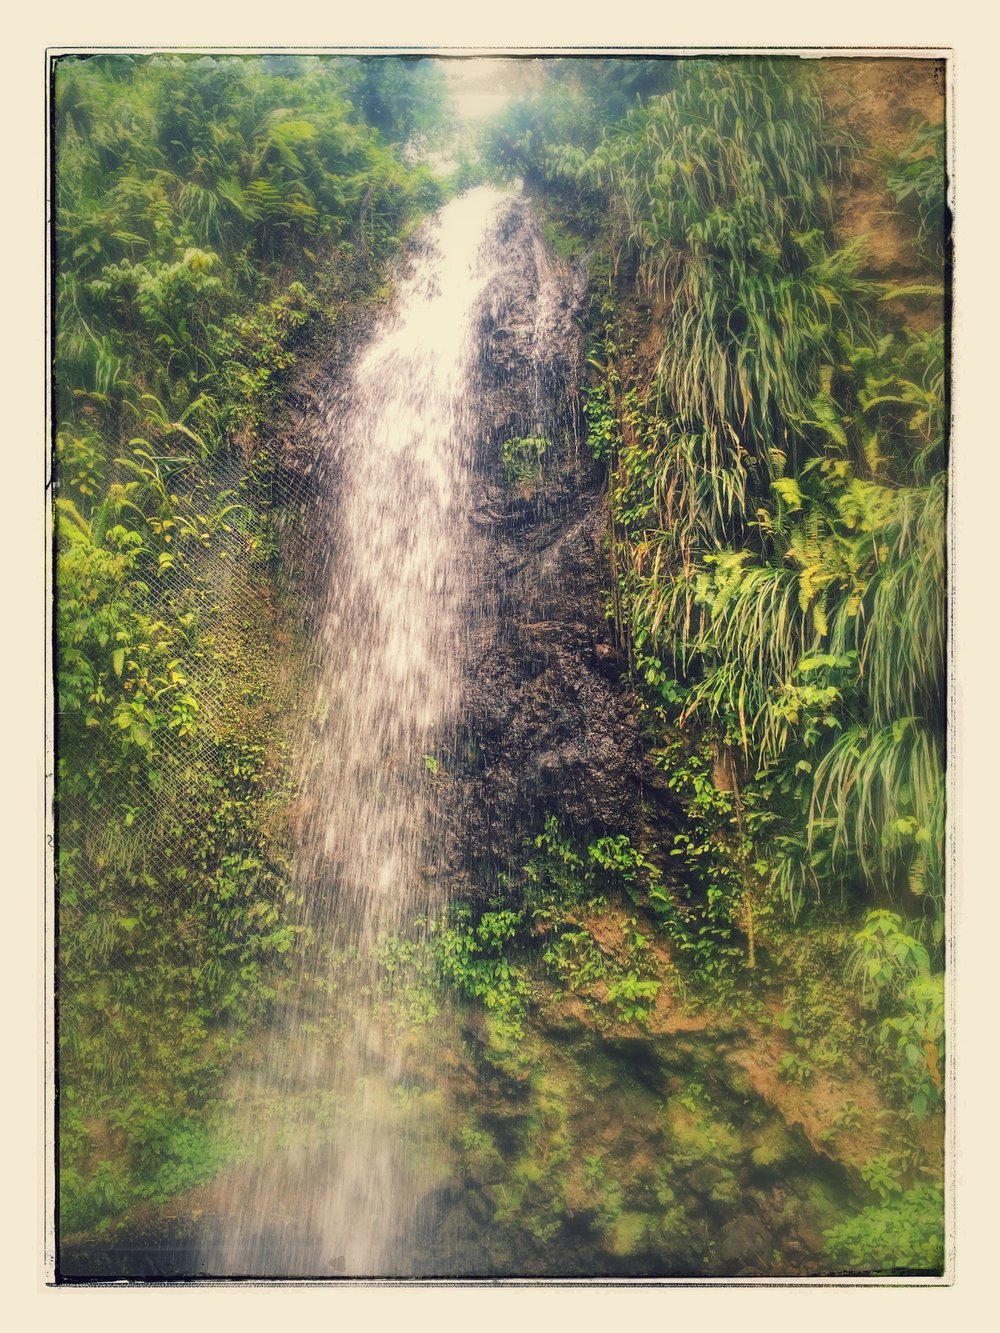 Waterfall, St. Lucia. (Copyright Angela Ferguson Photography 2015)